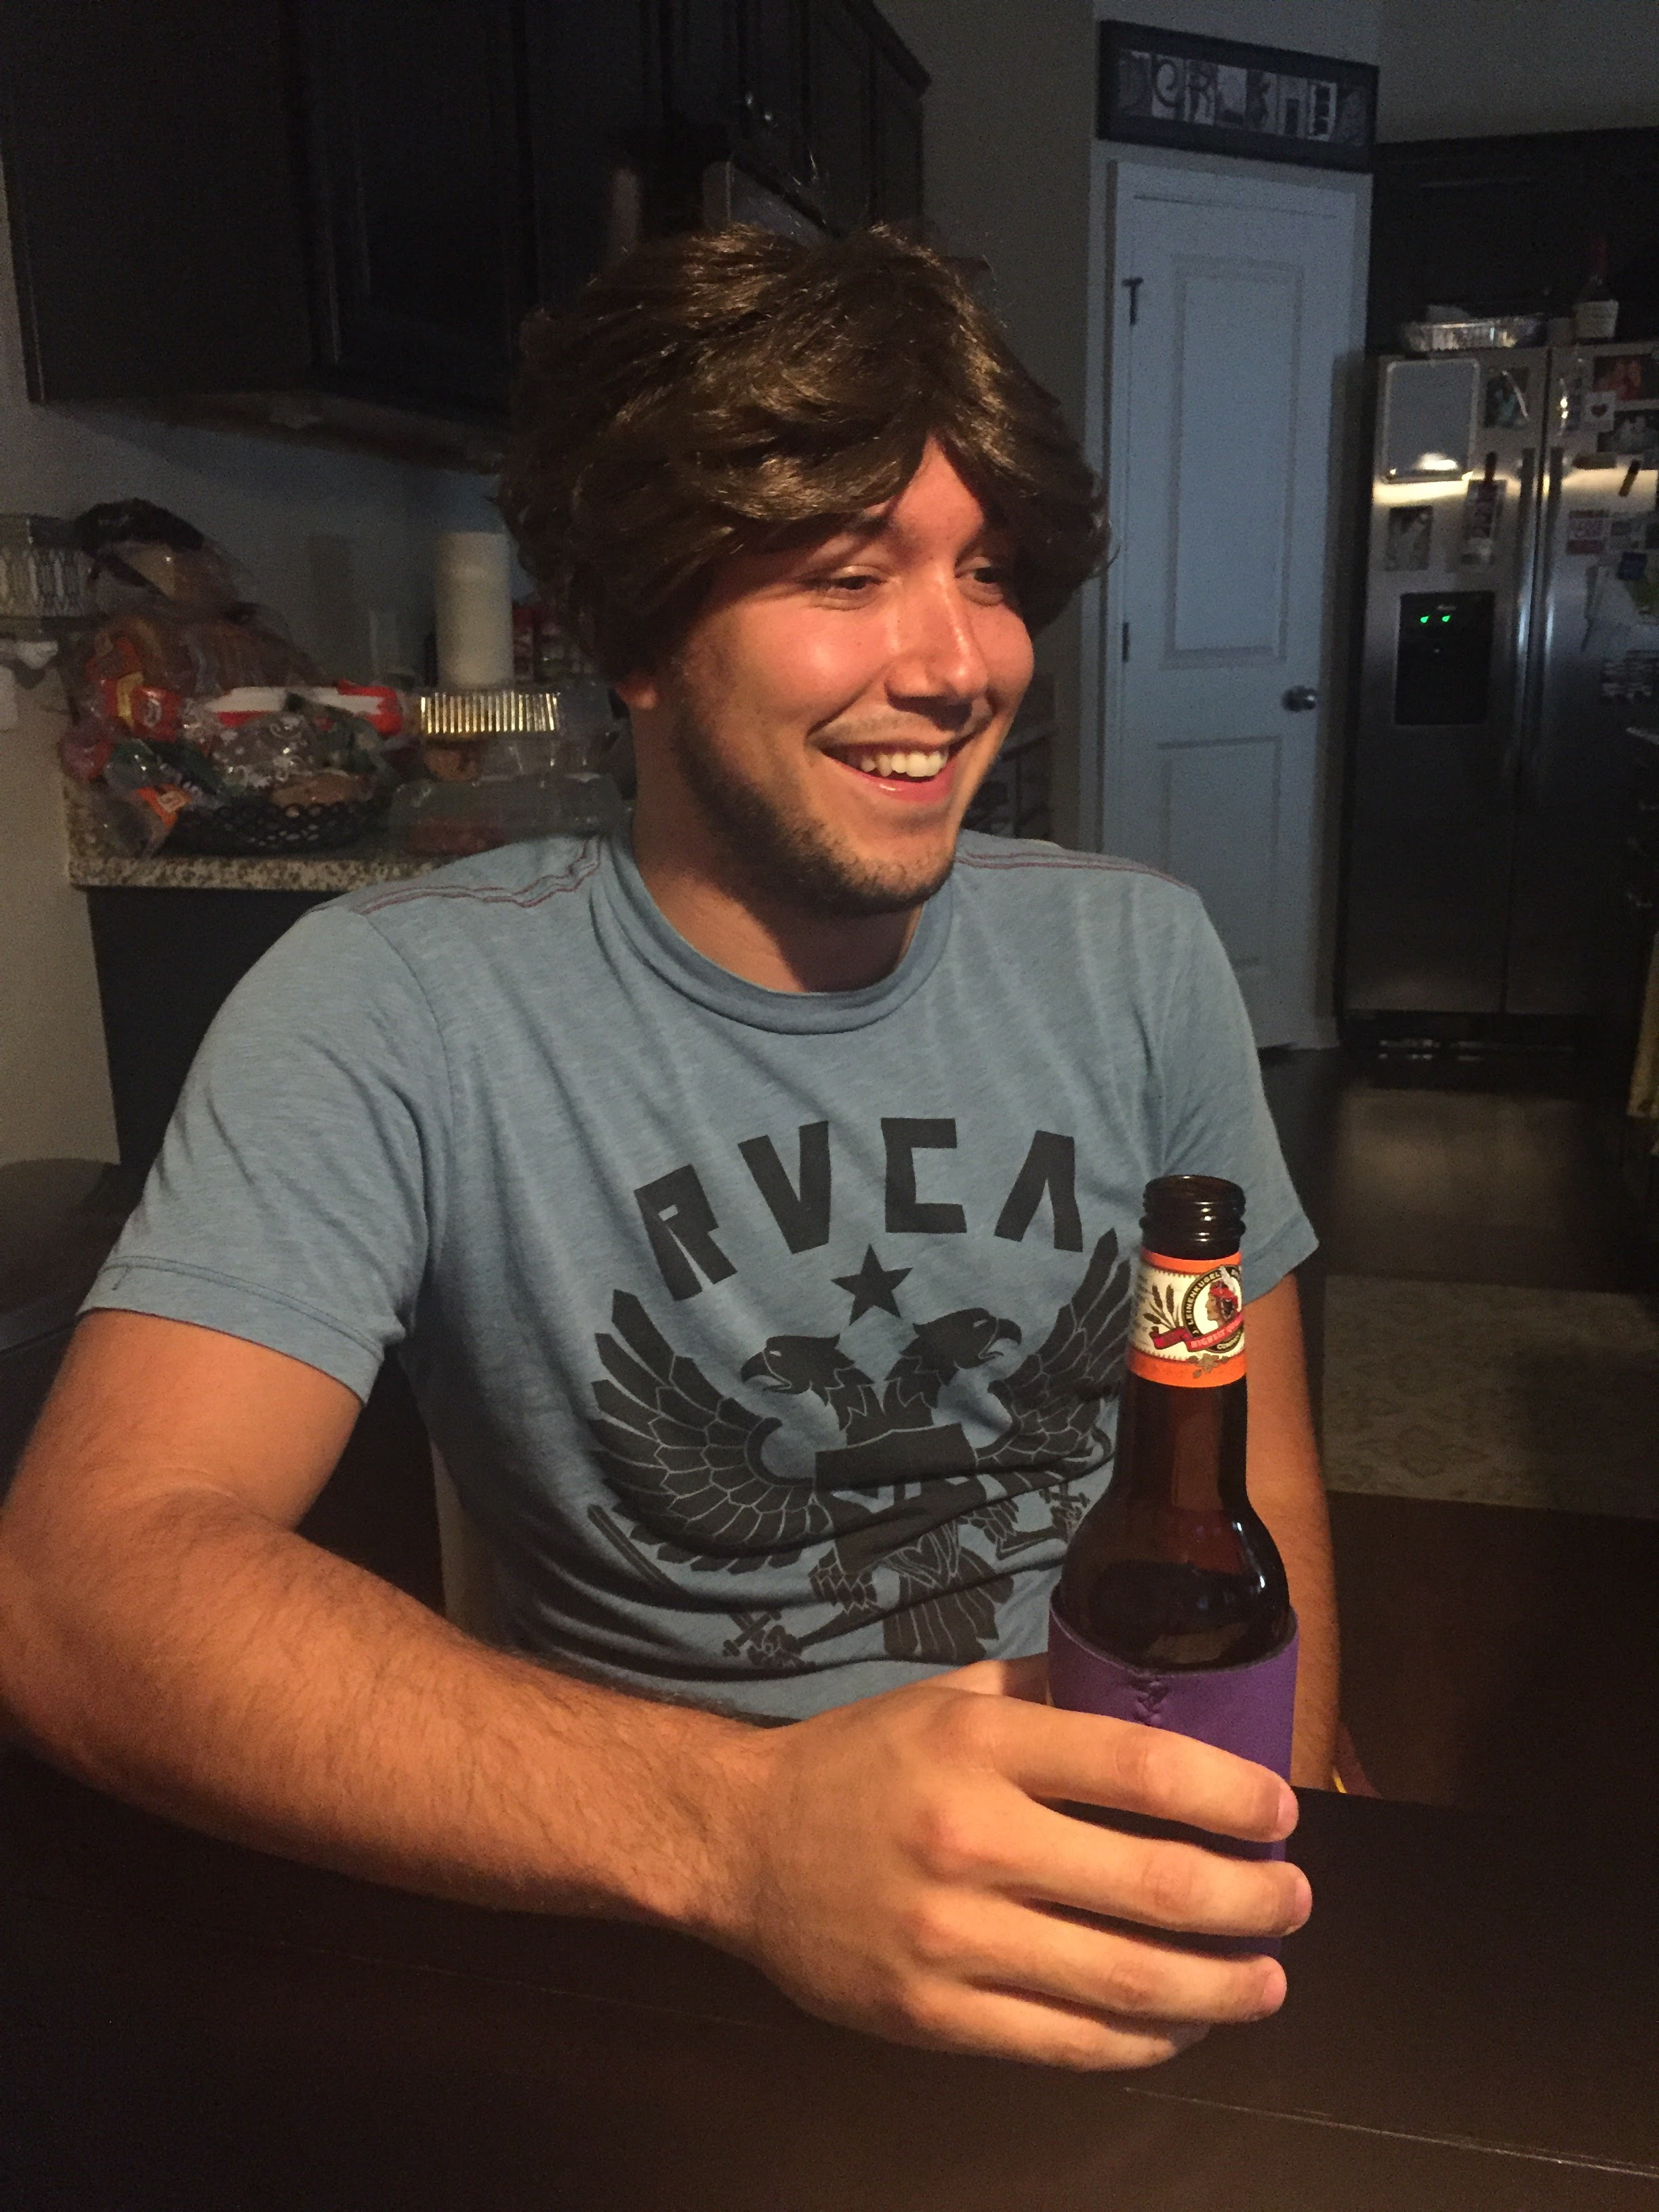 Wigs and beer